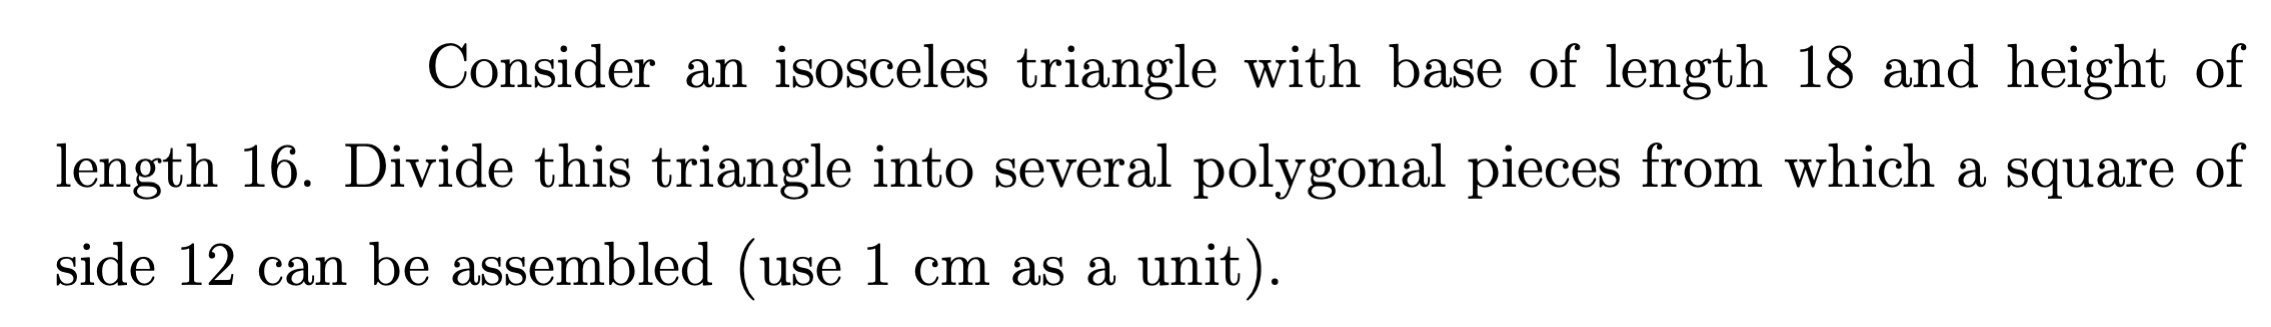 Consider an isosceles triangle with base of length 18 and height of length 16. Divide this triangle into several polygonal pieces from which a square of side 12 can be assembled (use 1 cm as a unit).